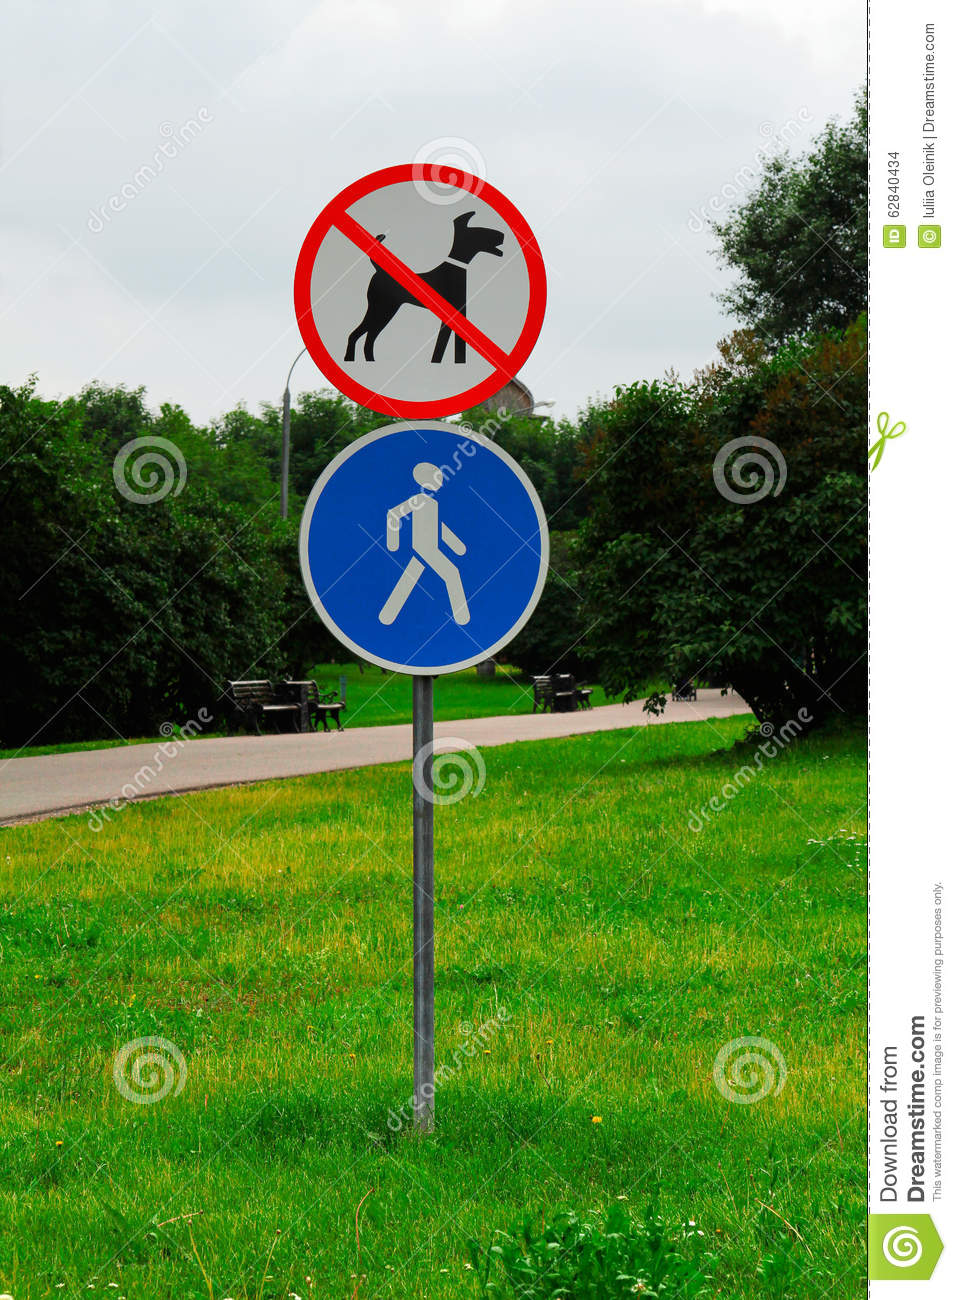 Walking of dogs prohibited and pedestrian zone